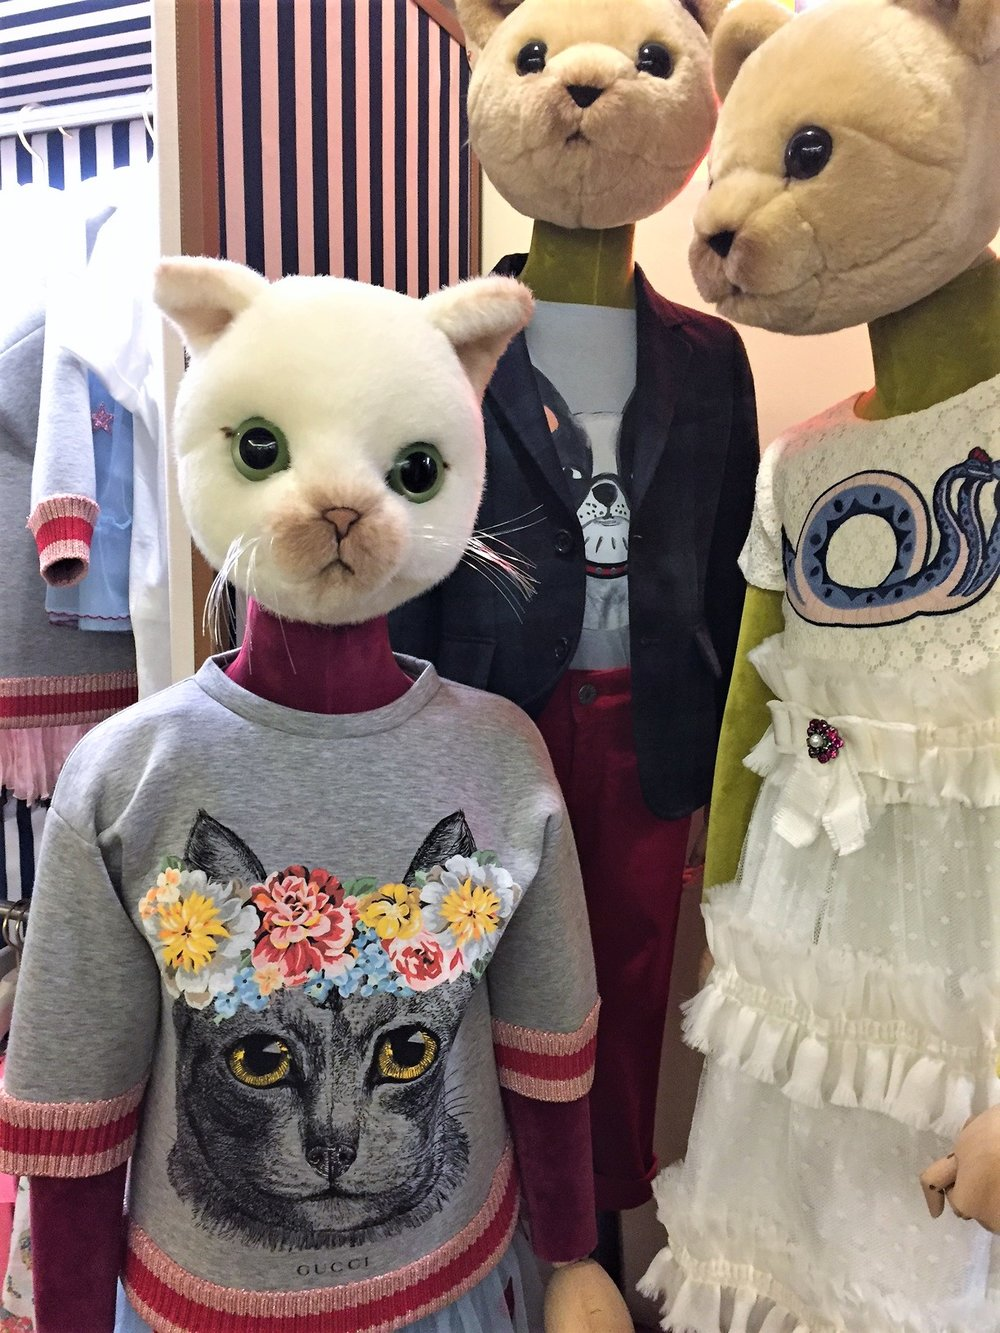 Sometimes art is a bit out there, like Gucci's kids section at Bergdorf Goodman's. But I'm sure someone finds inspiration from this, even if it is to get a pet cat. Or get rid of your pet cat, depending on which side of the fence you're on.